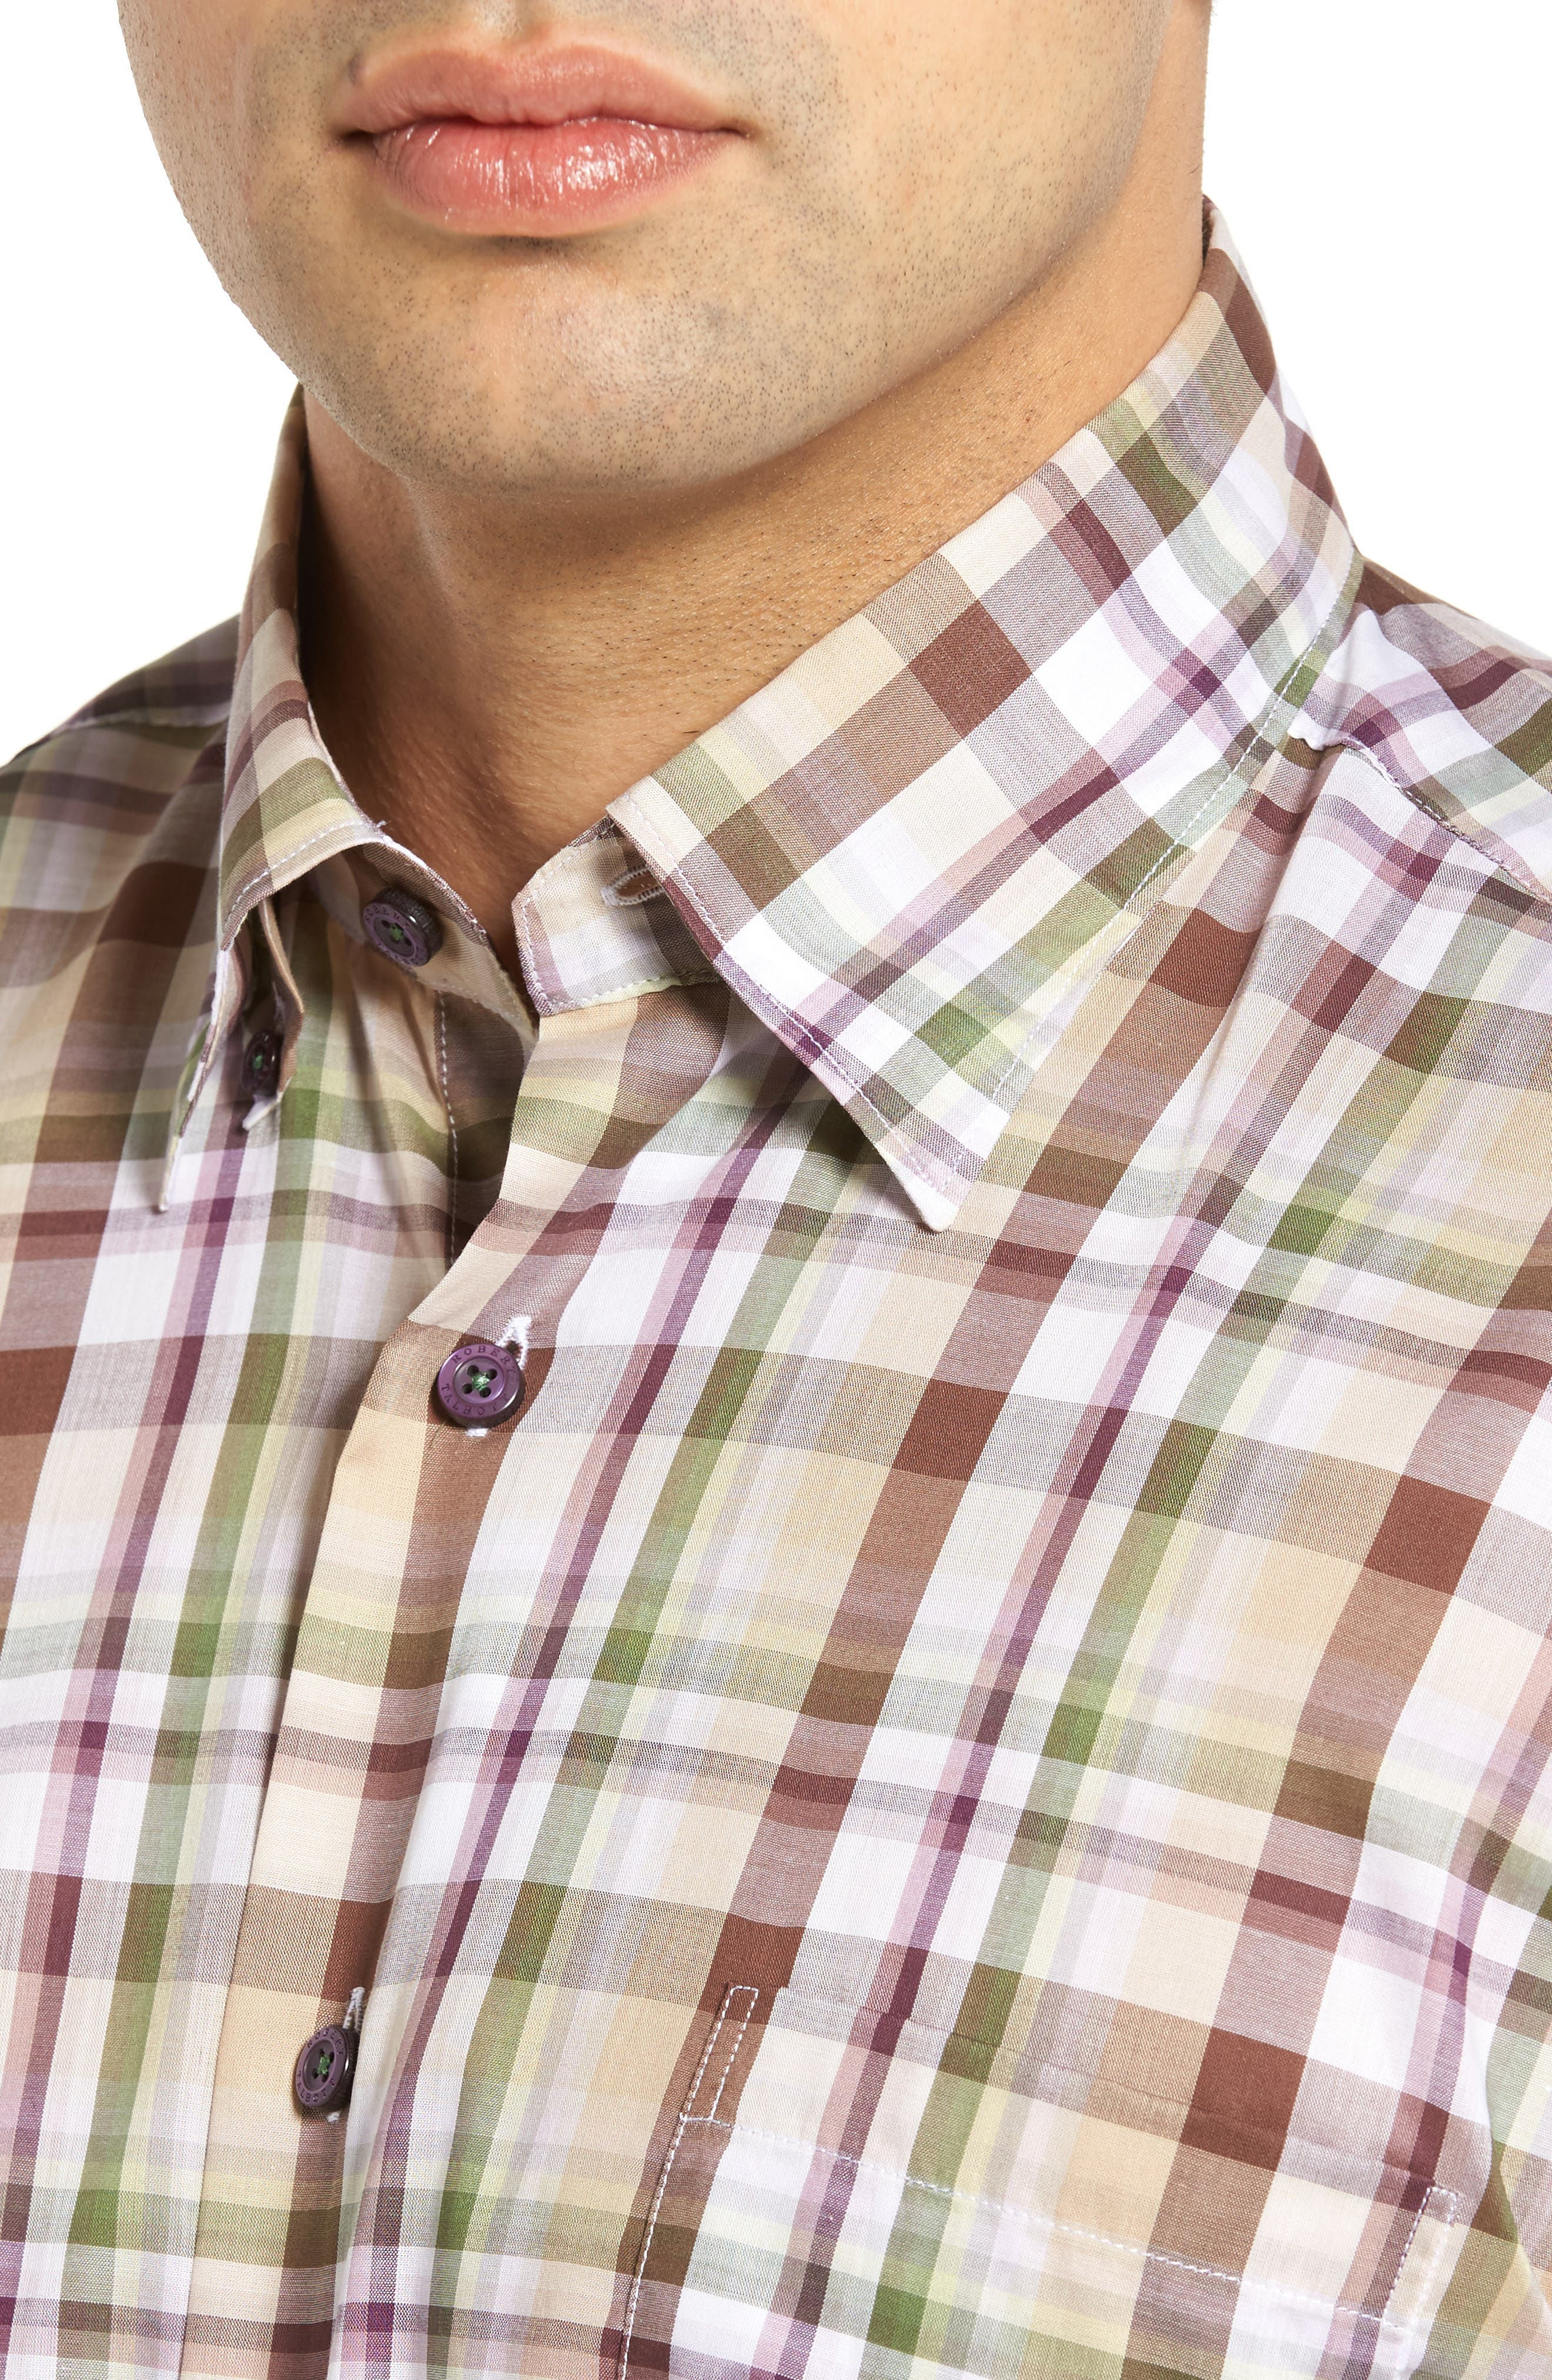 Anderson Classic Fit Sport Shirt,                             Alternate thumbnail 4, color,                             200